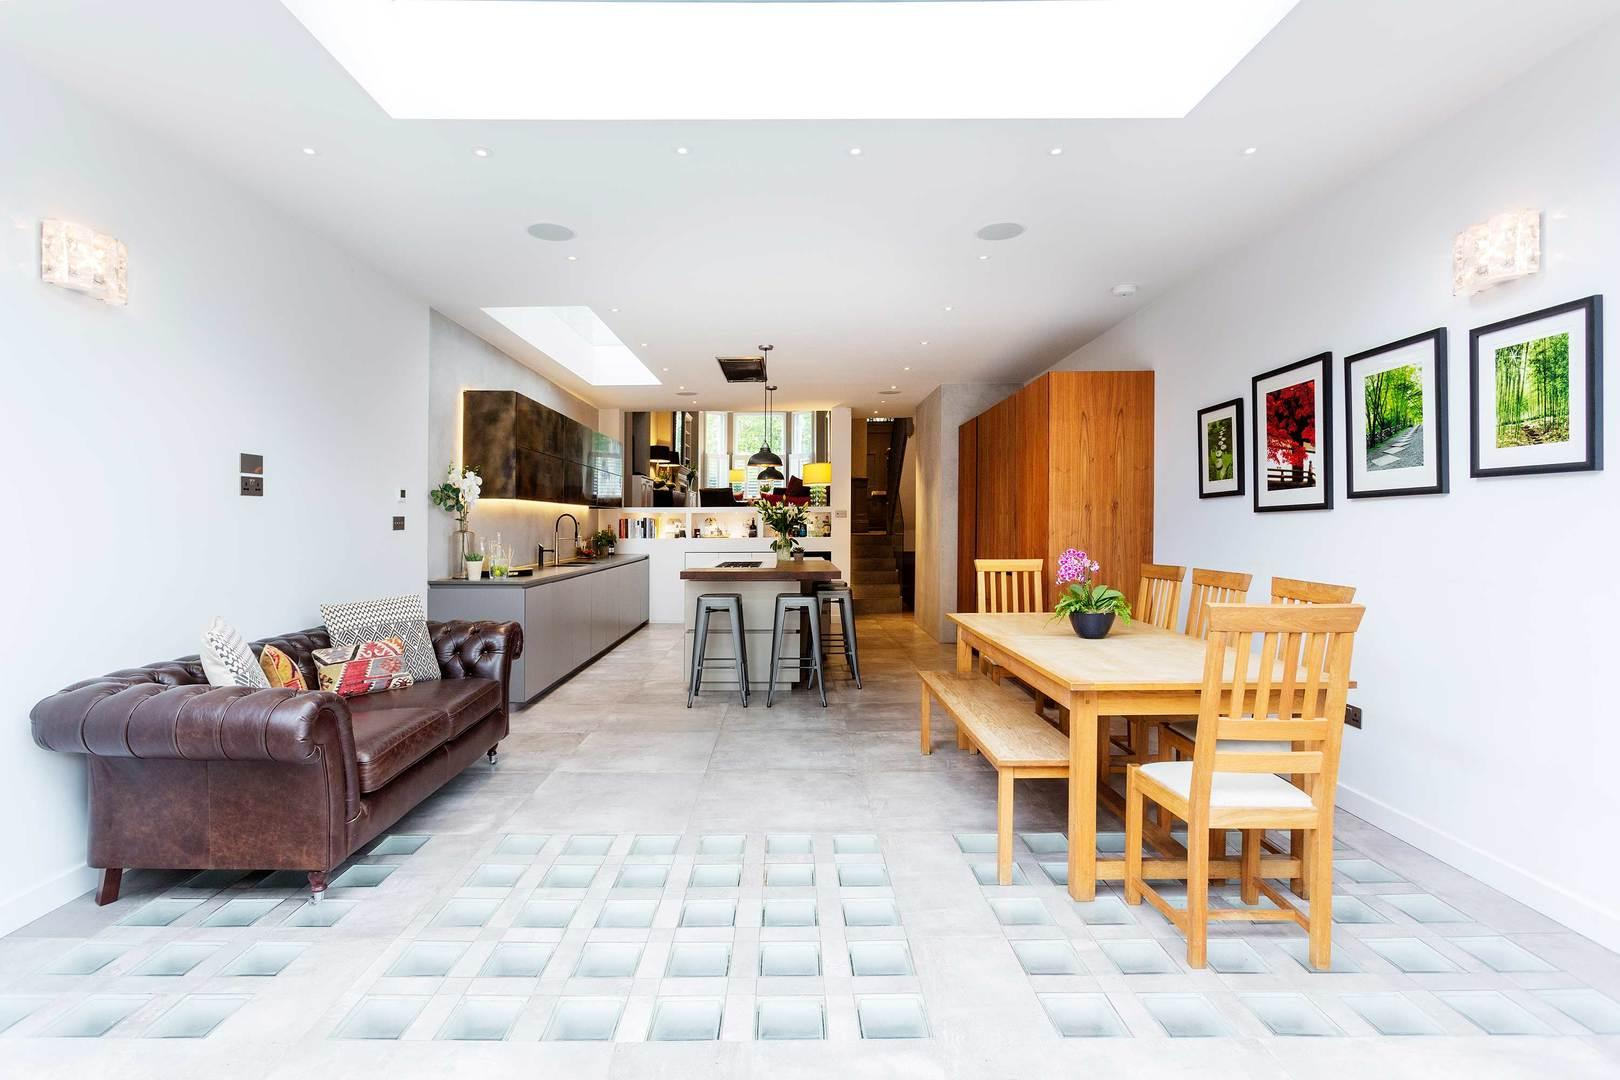 Property Image 2 - Stunning Wandsworth House with Private Garden